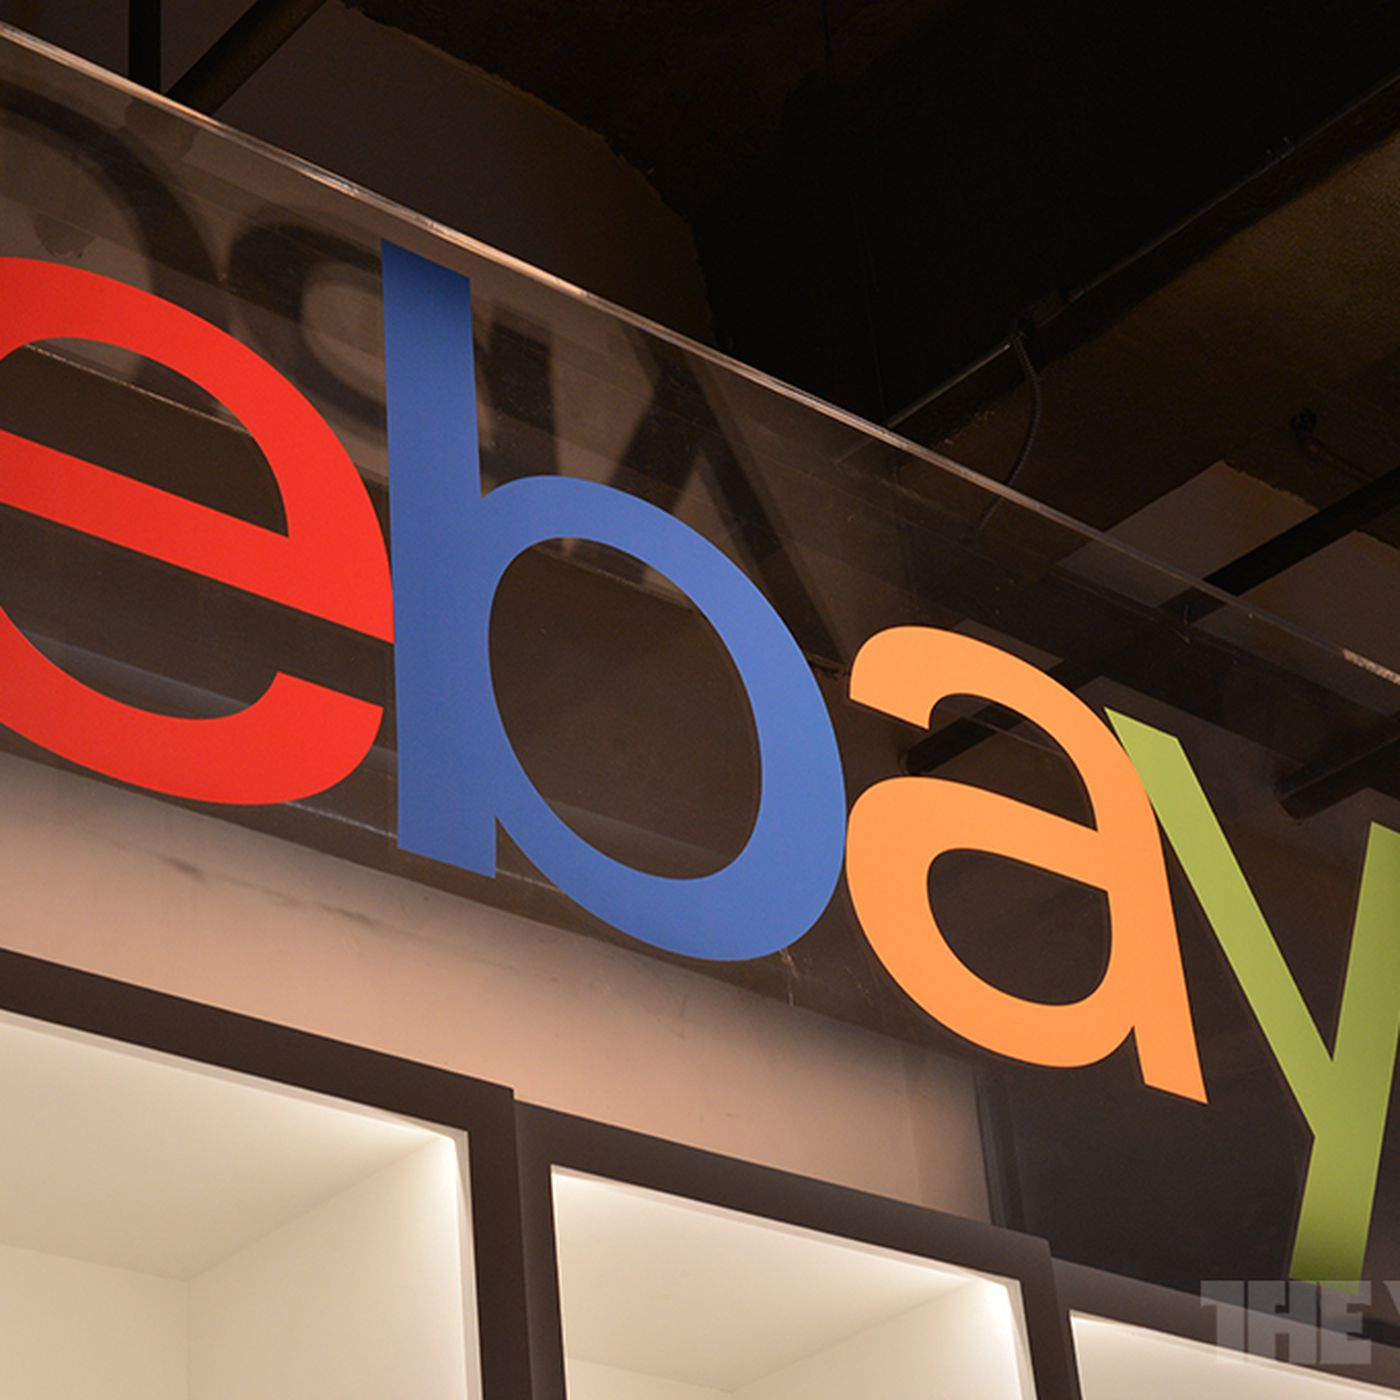 Ebay Is Waiving Seller Fees For New Businesses To Help Shuttered Retailers Move Online The Verge